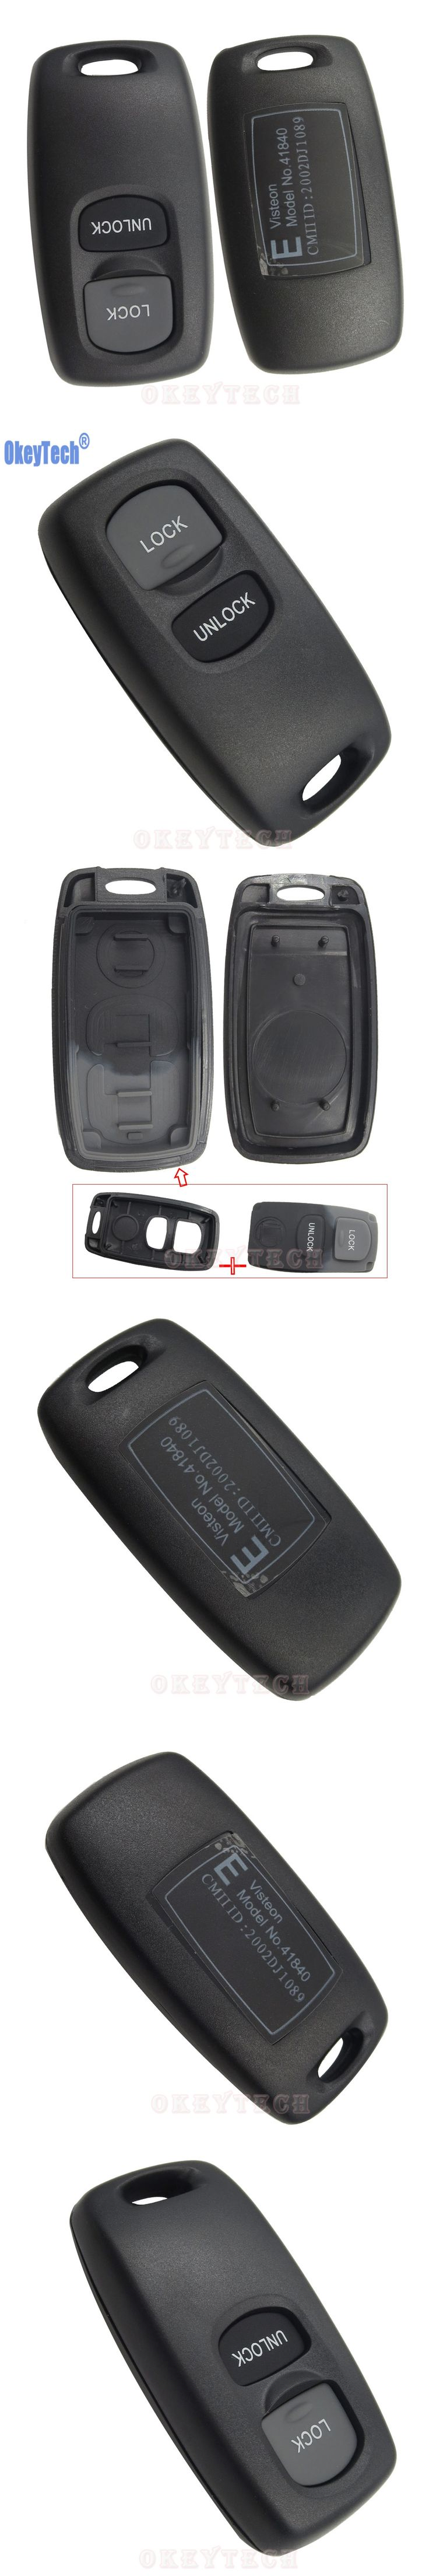 OkeyTech 2 Buttons Remote Control Car Key Case Shell For Mazda 2 3 6 323 626 Blank Replacement Keyless Entry Fob Cover No Chip